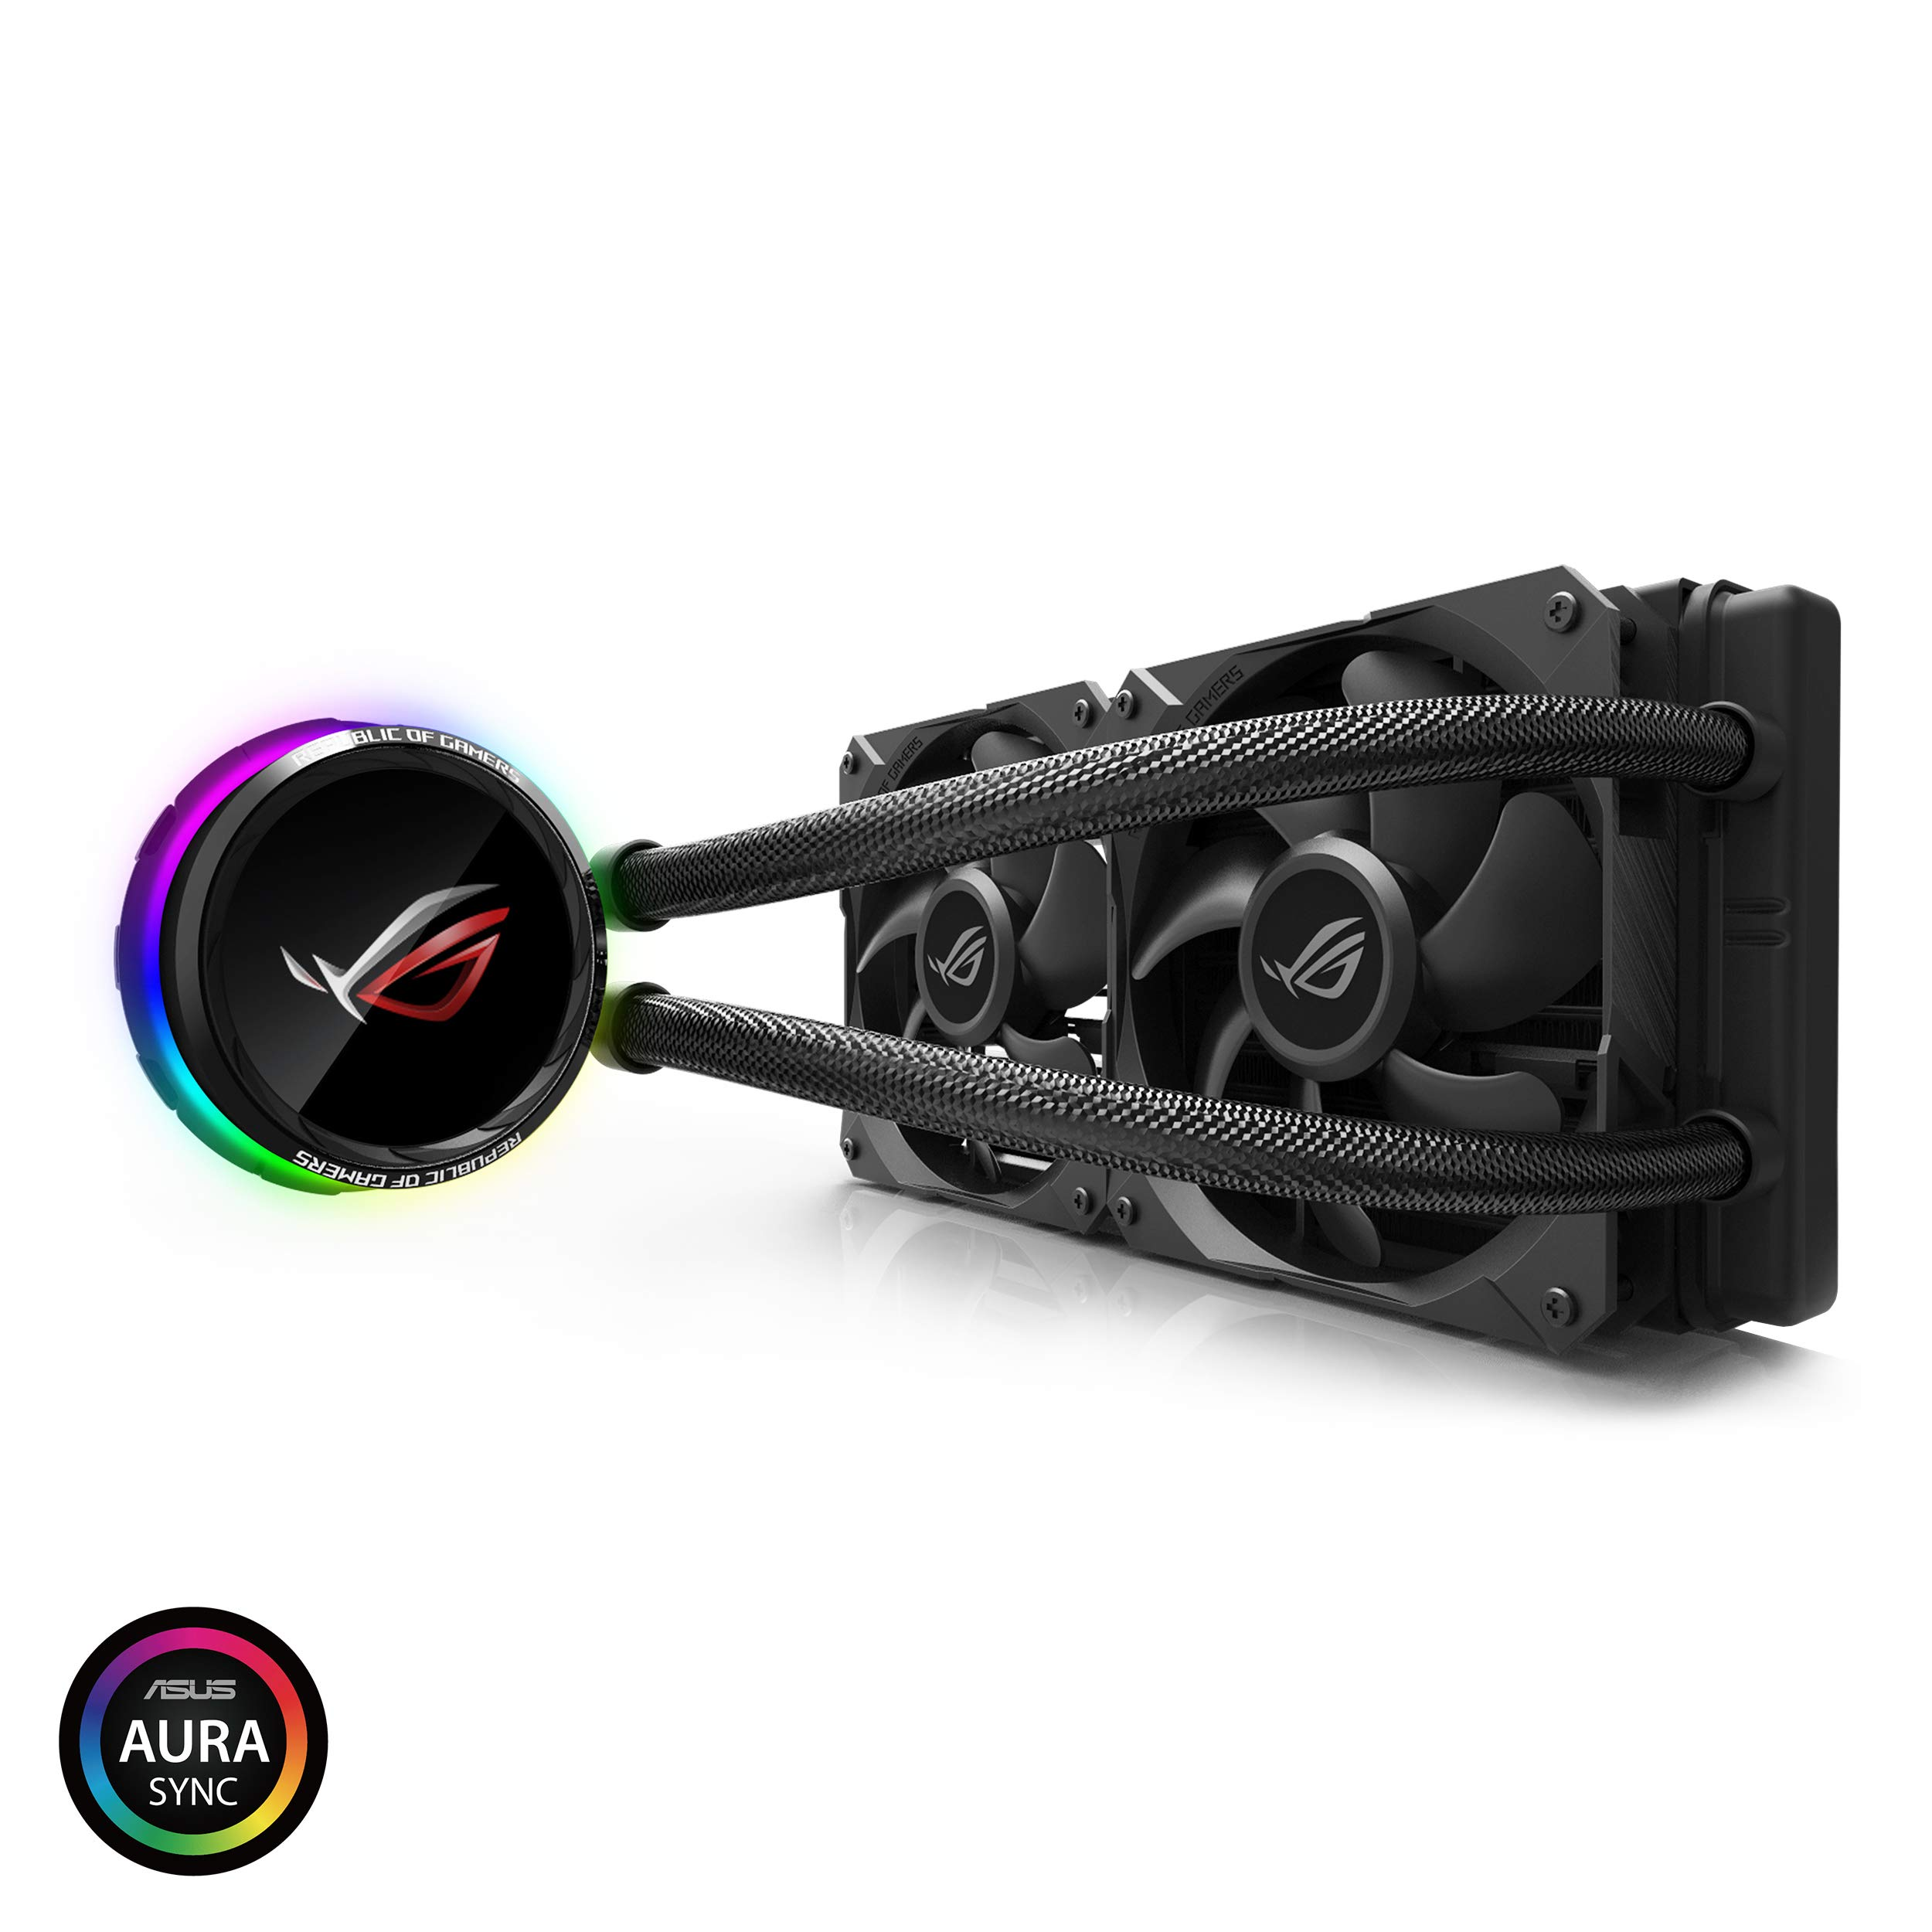 ASUS ROG RYUO 240 RGB AIO Liquid CPU Cooler 240mm Radiator Dual 120mm 4-Pin PWM Fan with OLED Panel & Fan Control 1.77'' by ASUS (Image #1)